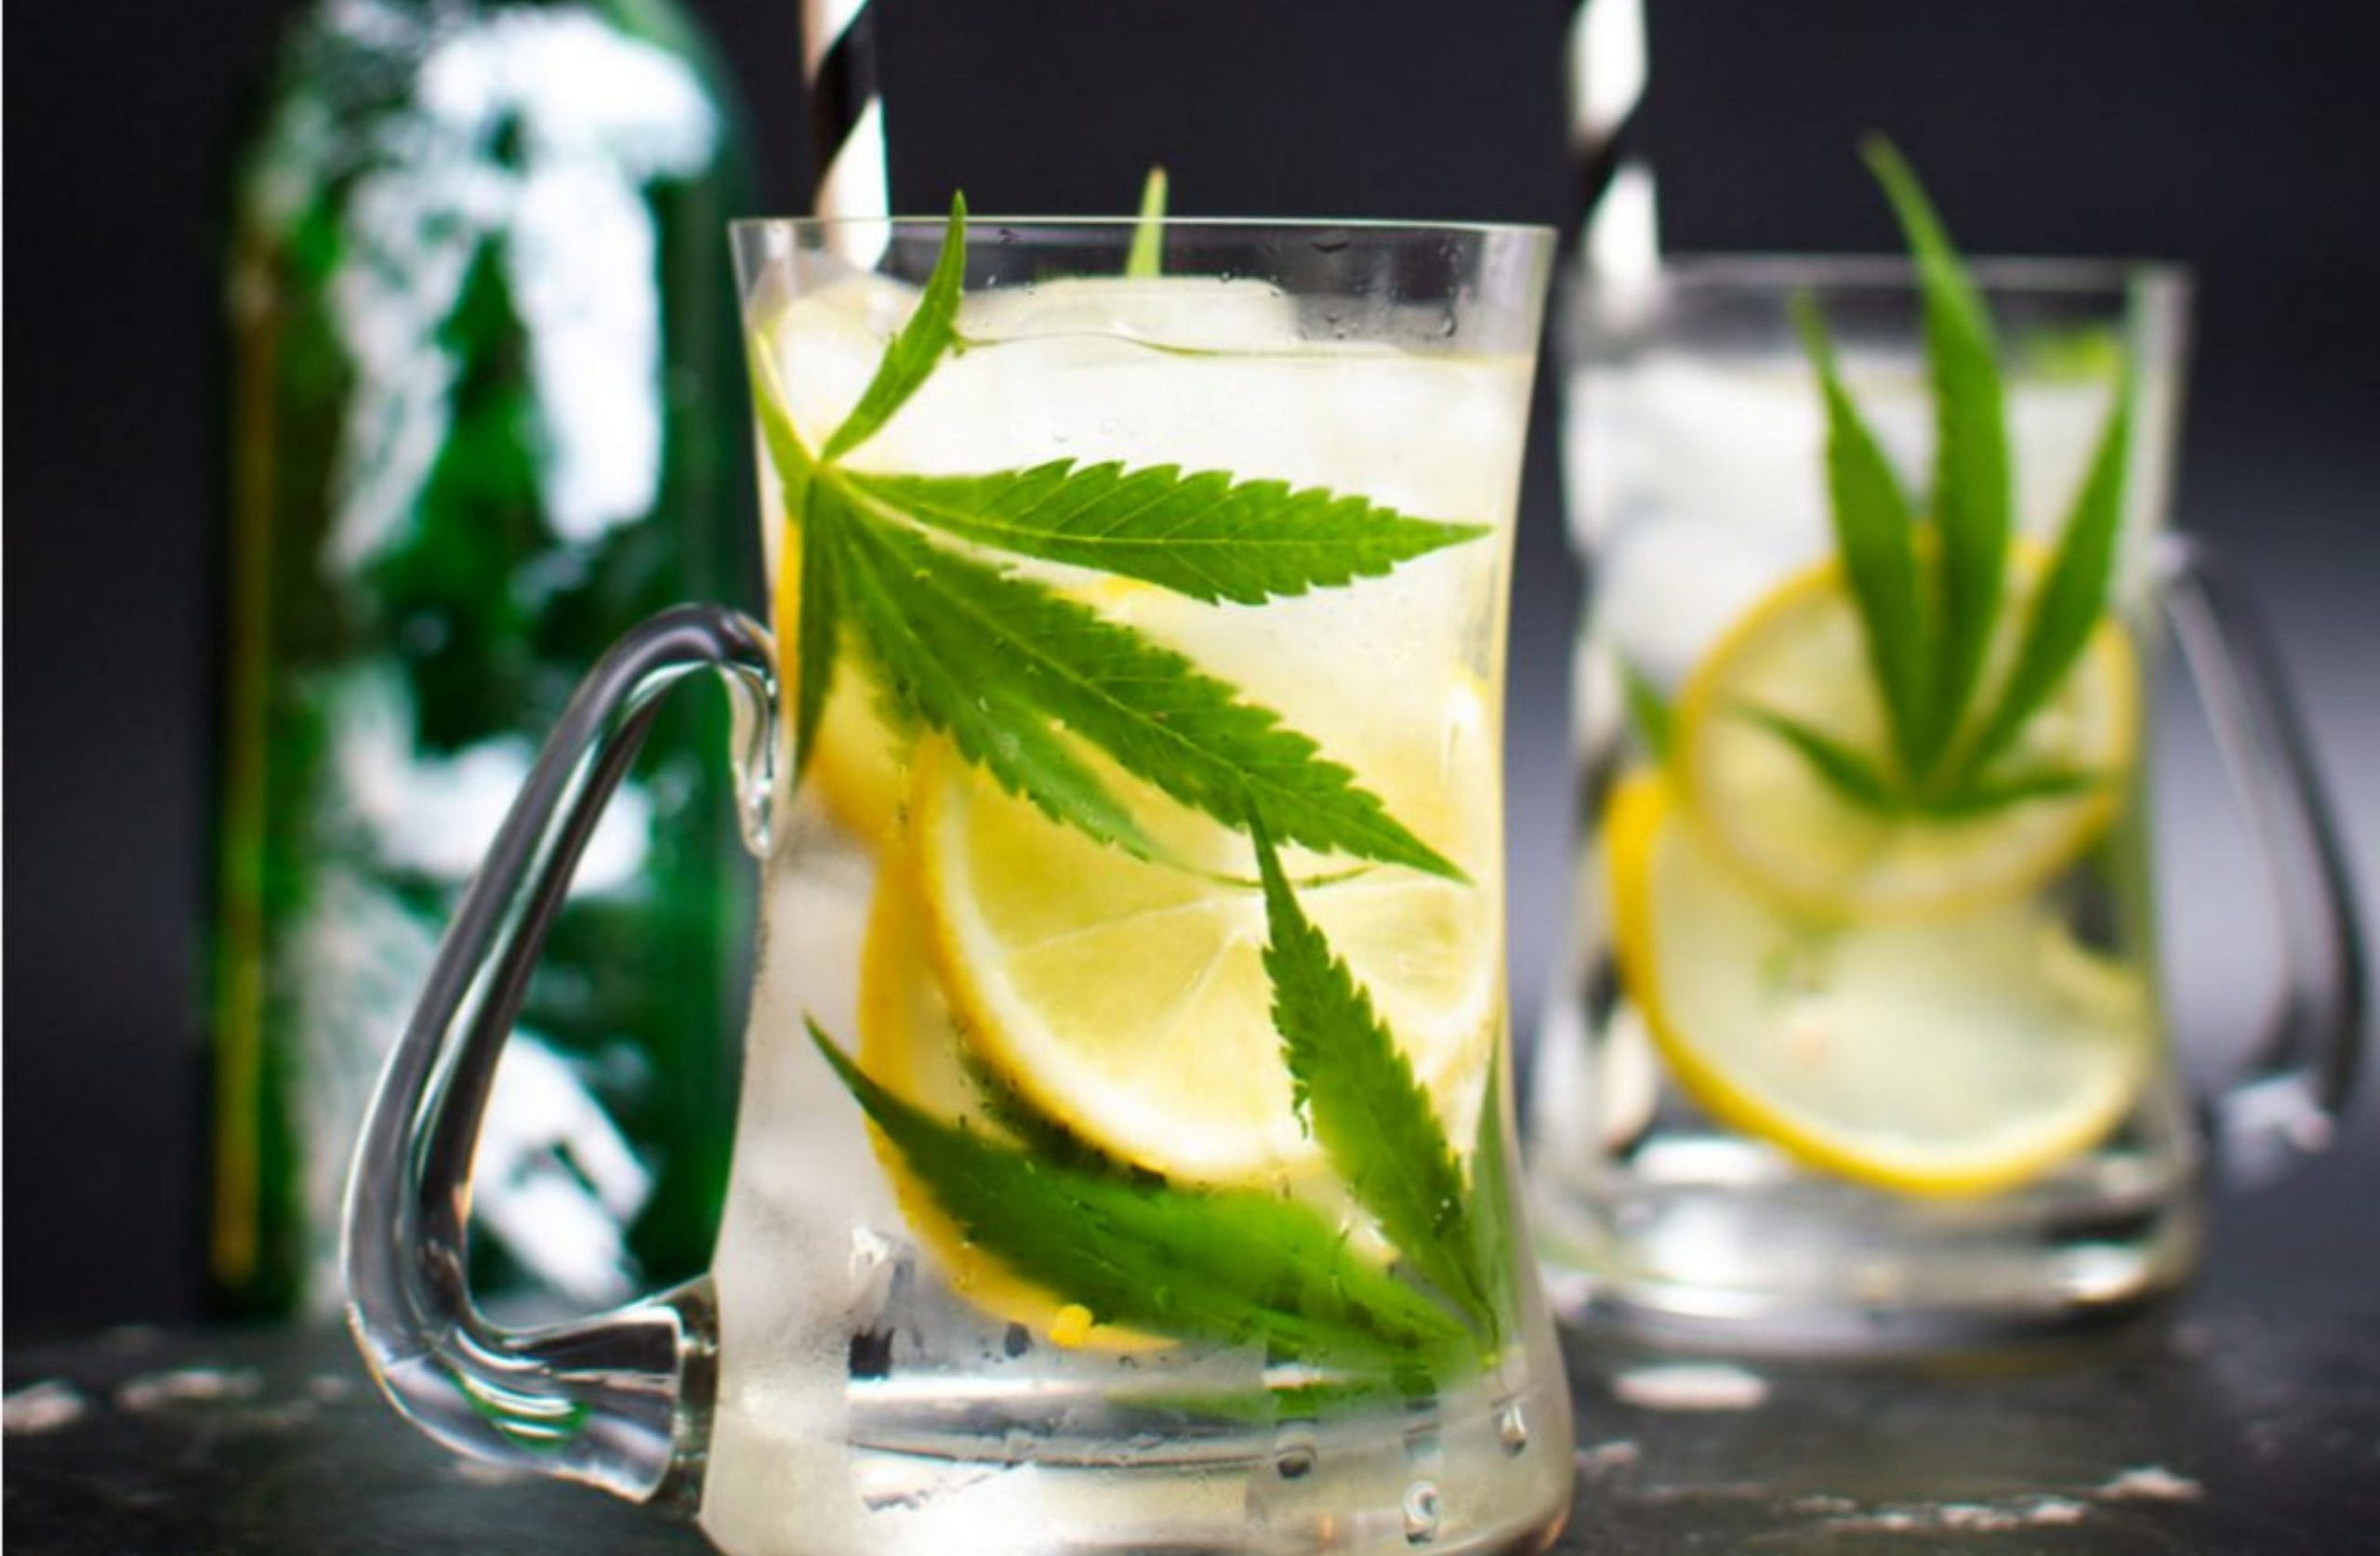 Cannabis Sparks a Beverage Revolution